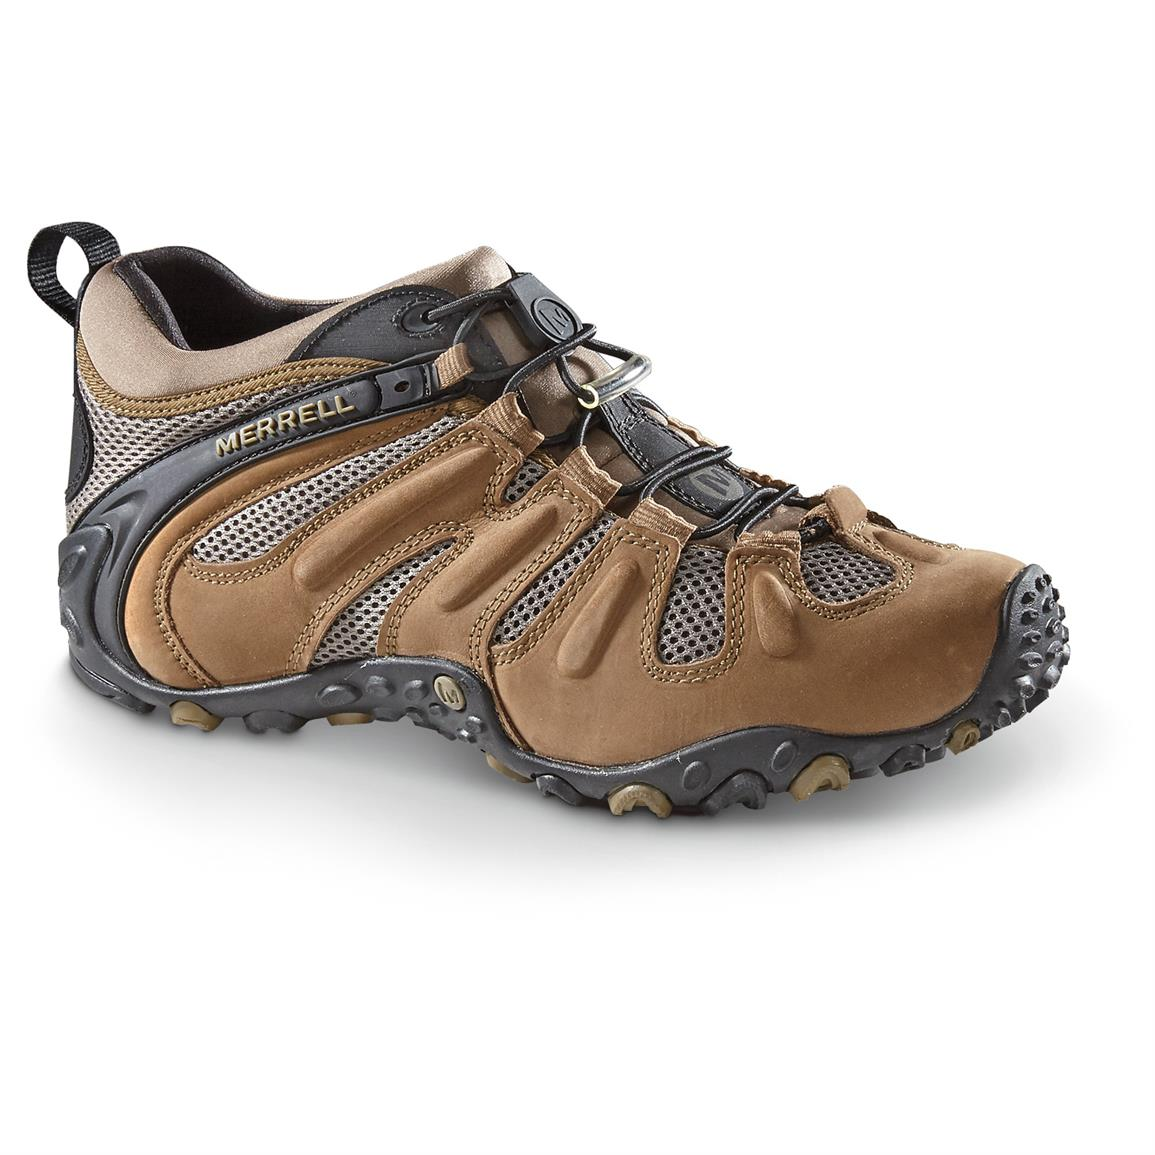 Merrell Chameleon Prime Stretch Hiking Shoes, Kangaroo